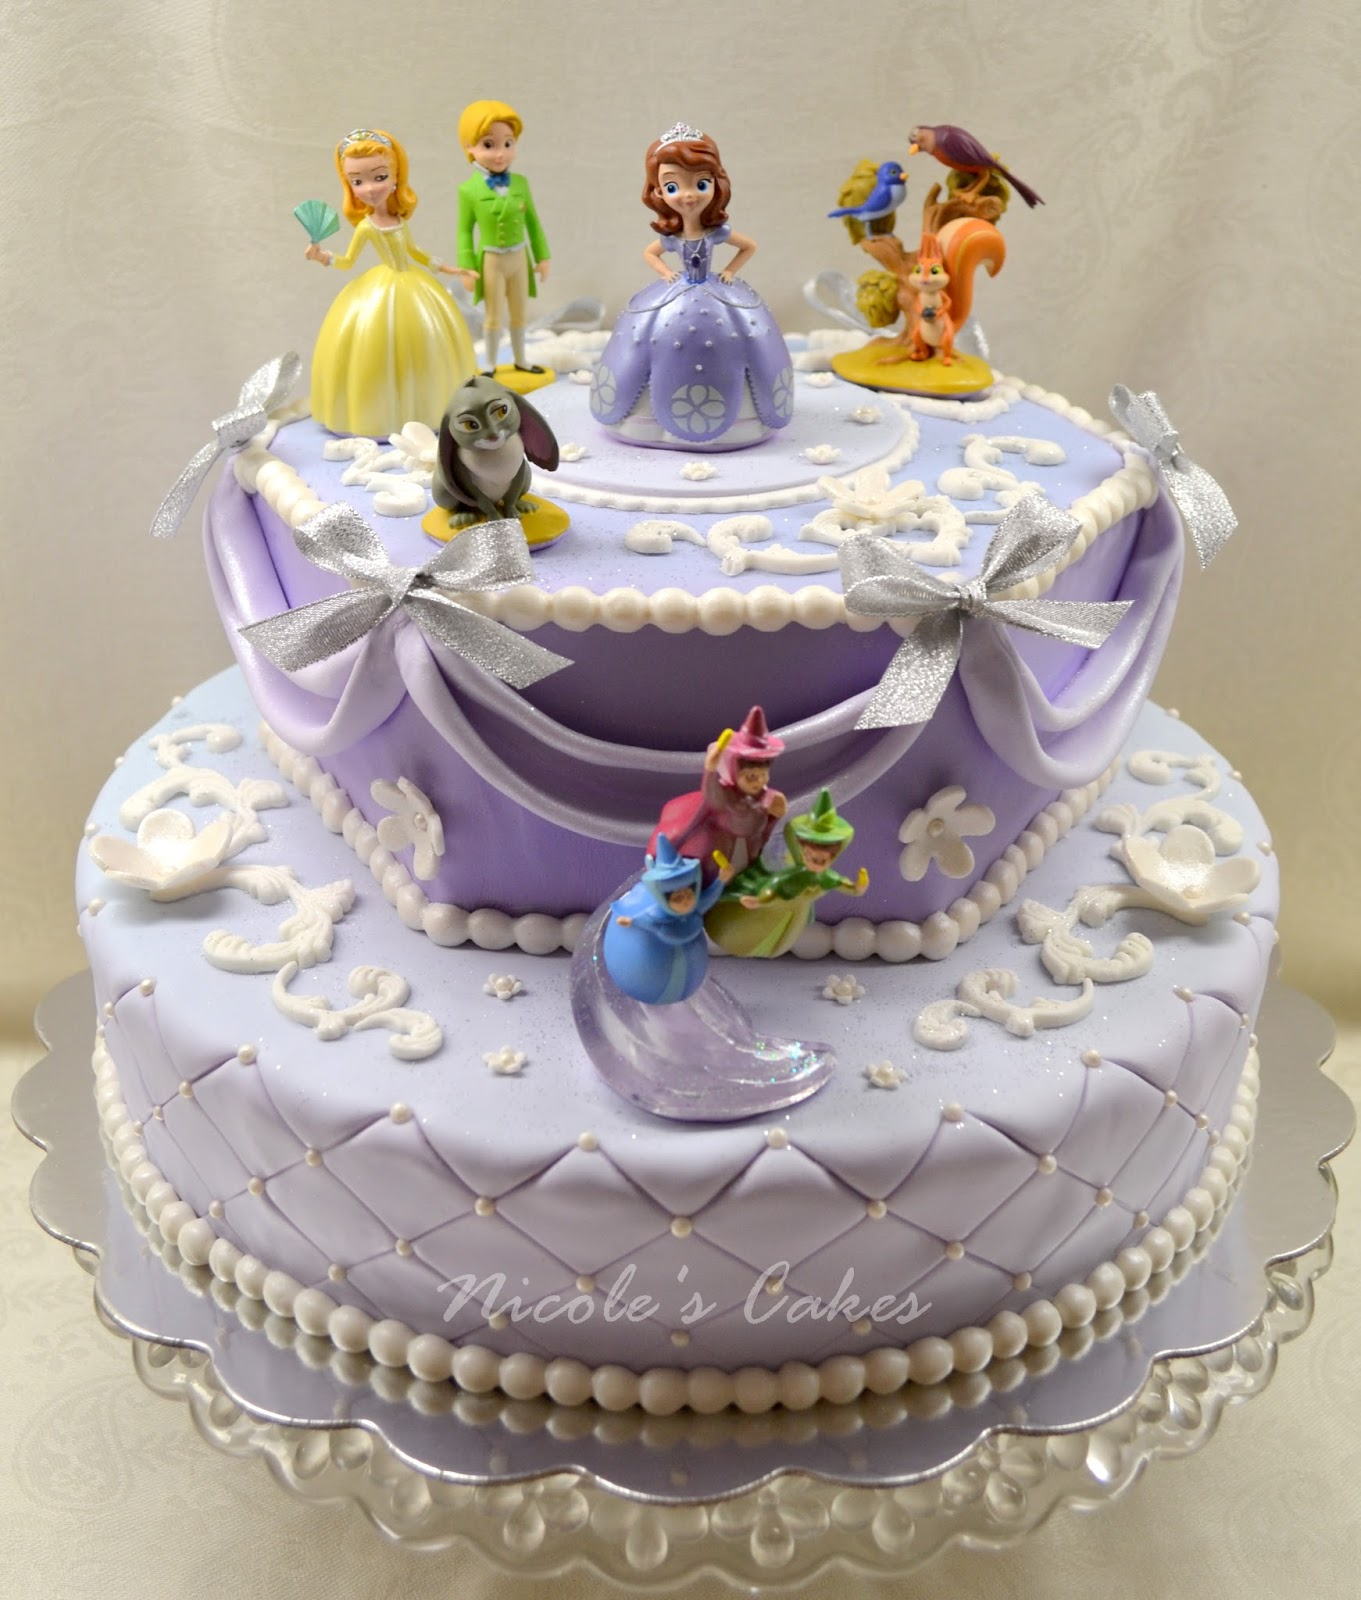 Pictures Of Princess Sofia Cake : Princess parties on Pinterest Sofia The First, Princess ...